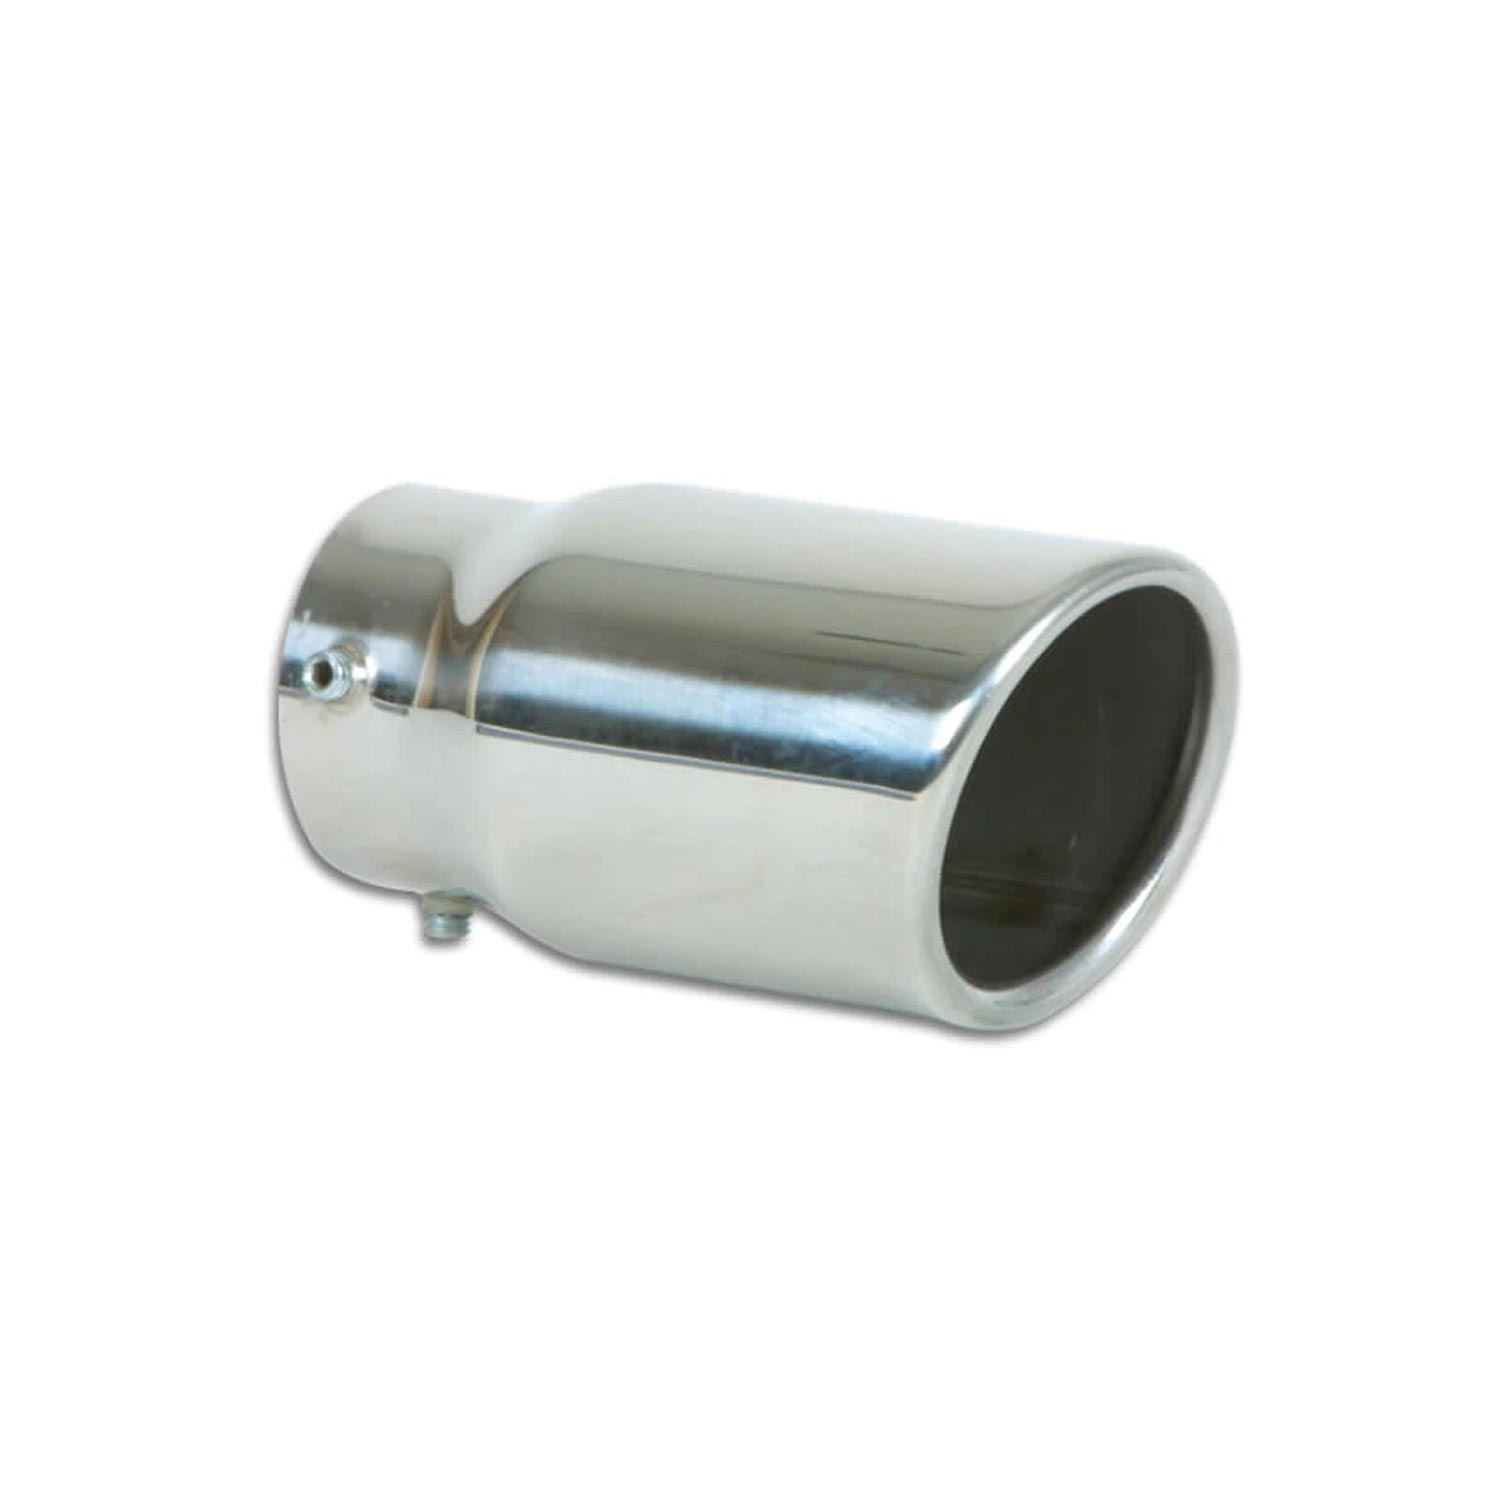 1503 vibrant performance bolt on exhaust tips 3 round stainless steel bolt on tip single wall angle cut